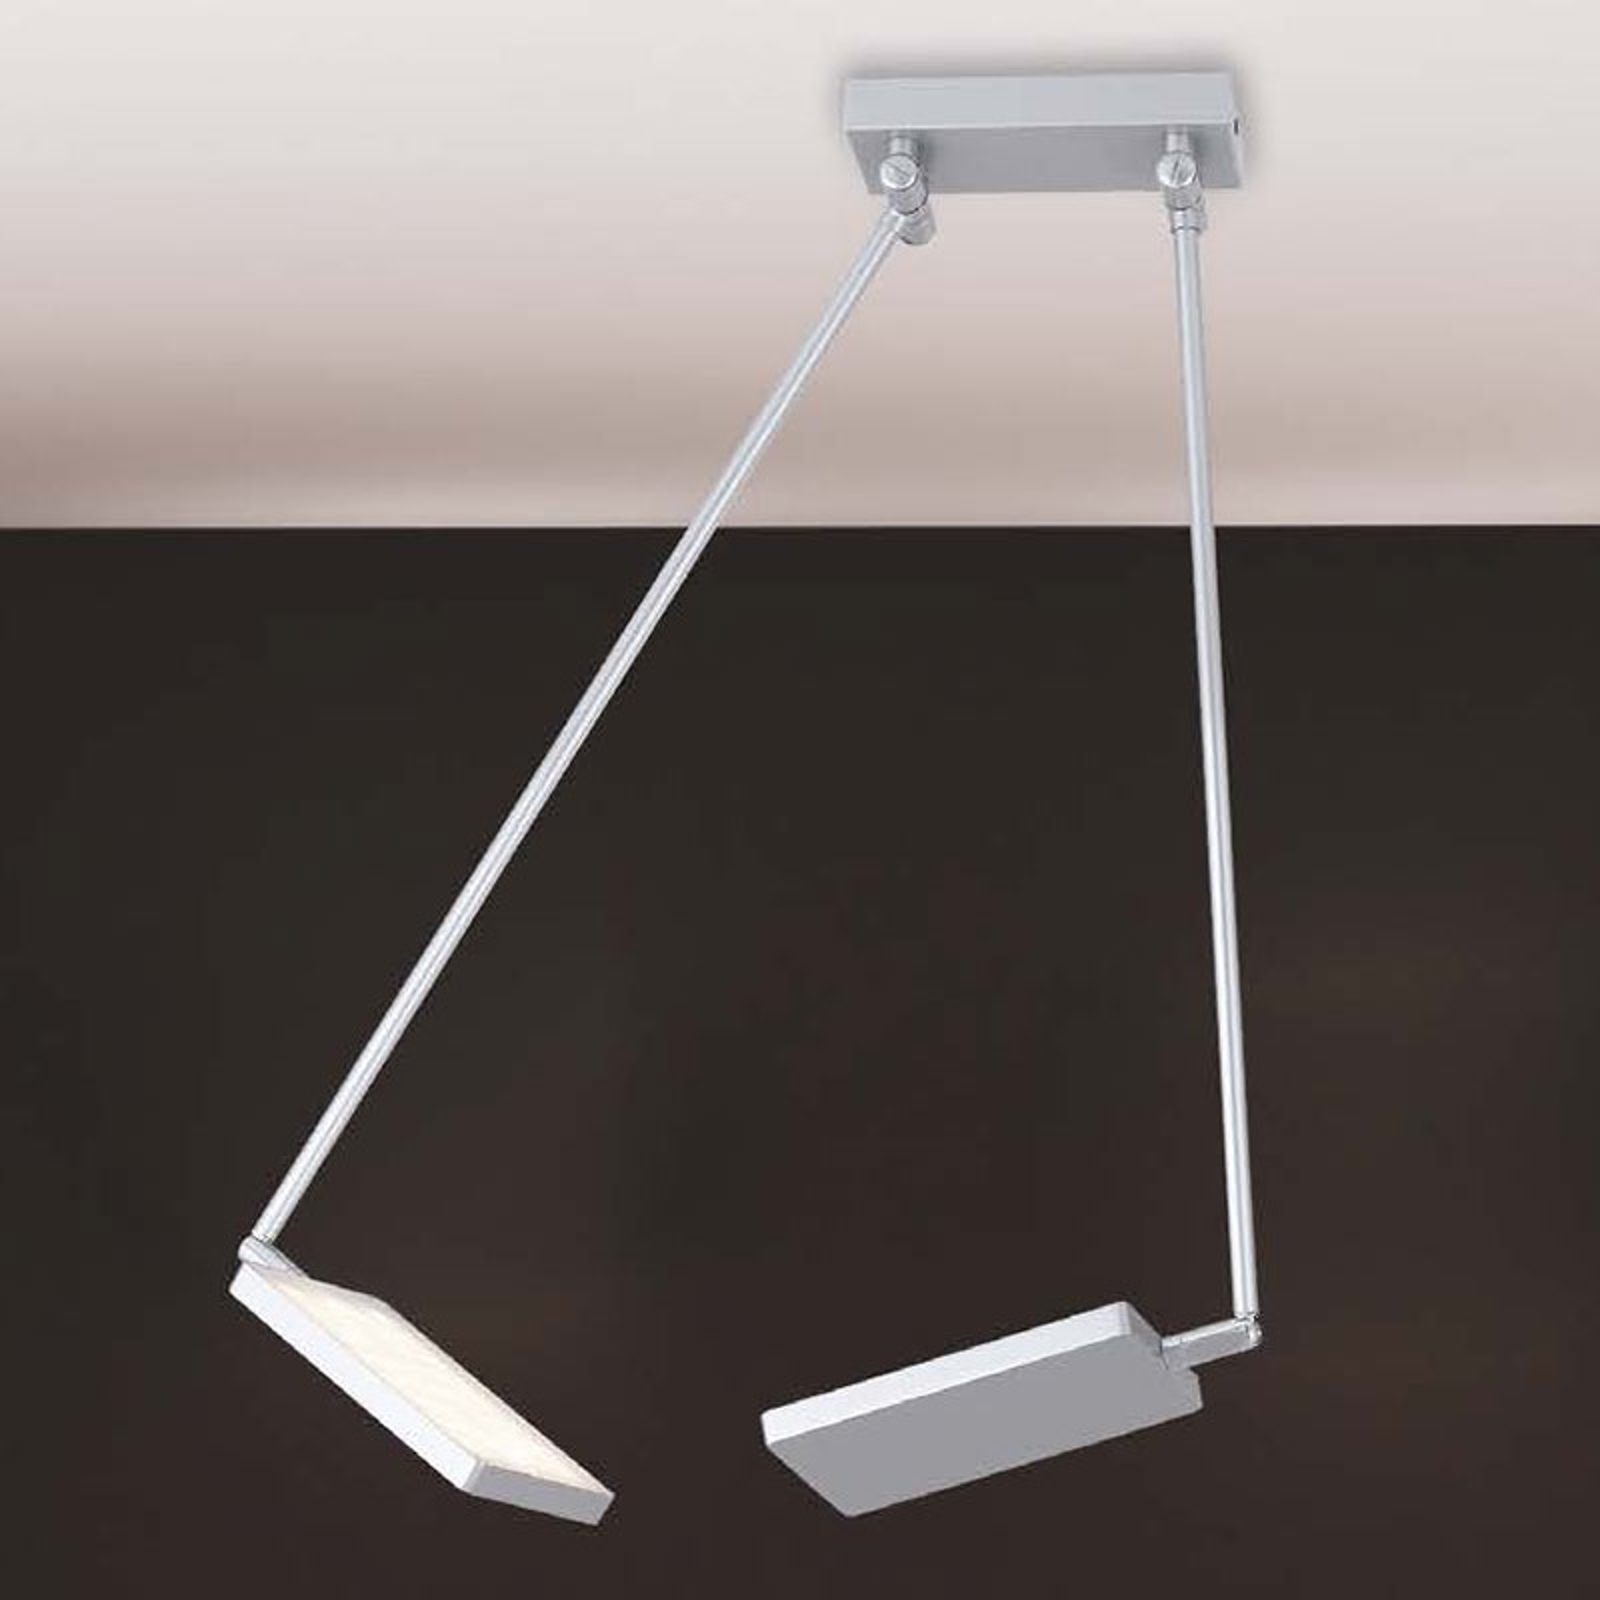 Lampa sufitowa LED Book, szara